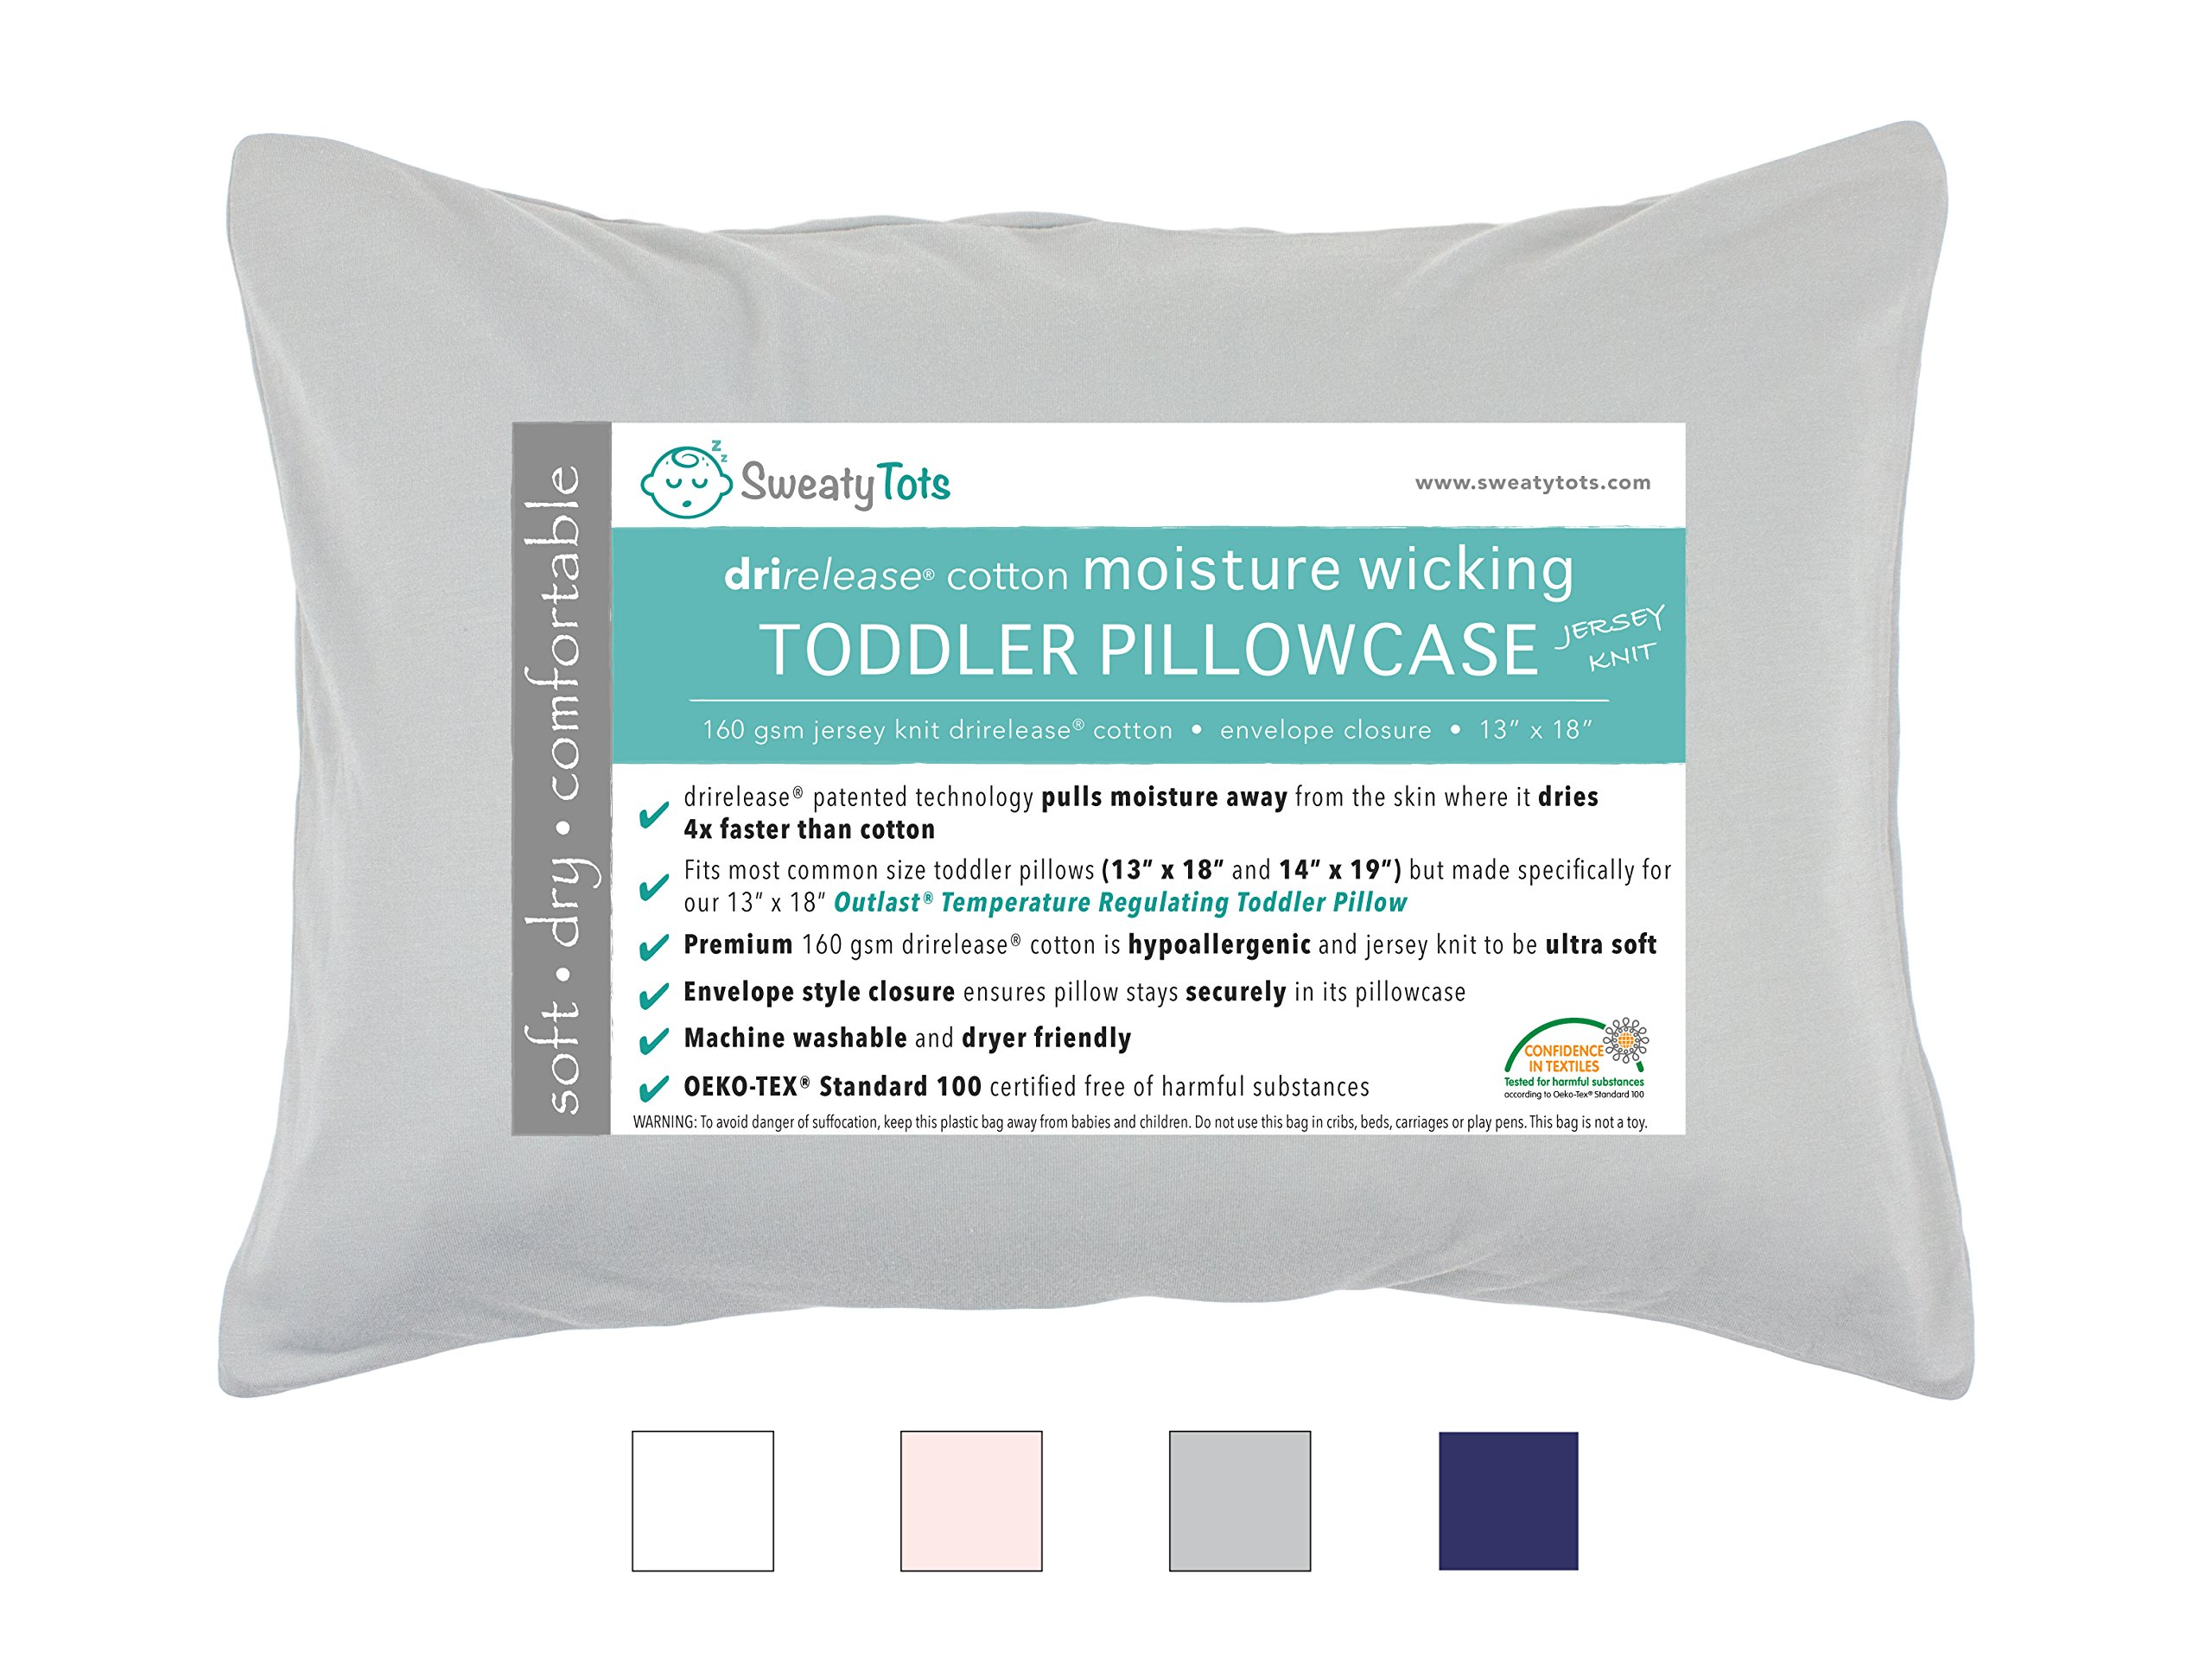 70a7612270 Moisture Wicking Toddler Pillowcase for Sweaty Sleepers - Fits 13 x 18 and  14 x 19